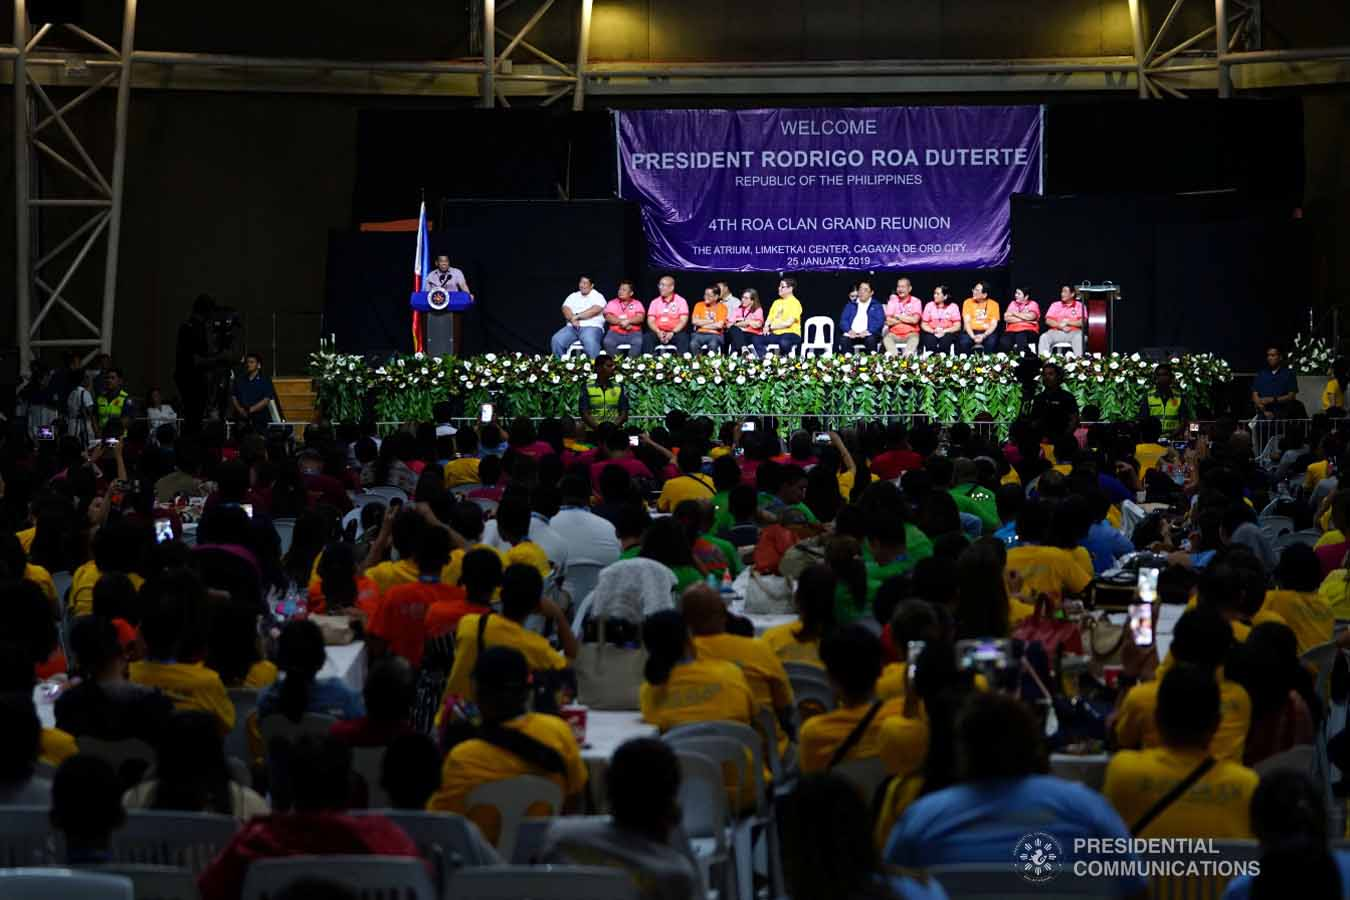 Attendees during the 4th Roa Clan Grand Reunion listen to President Rodrigo Roa Duterte as he delivers his speech during the event at the Limketkai Center in Cagayan de Oro City on January 25, 2019. JOEY DALUMPINES/PRESIDENTIAL PHOTO